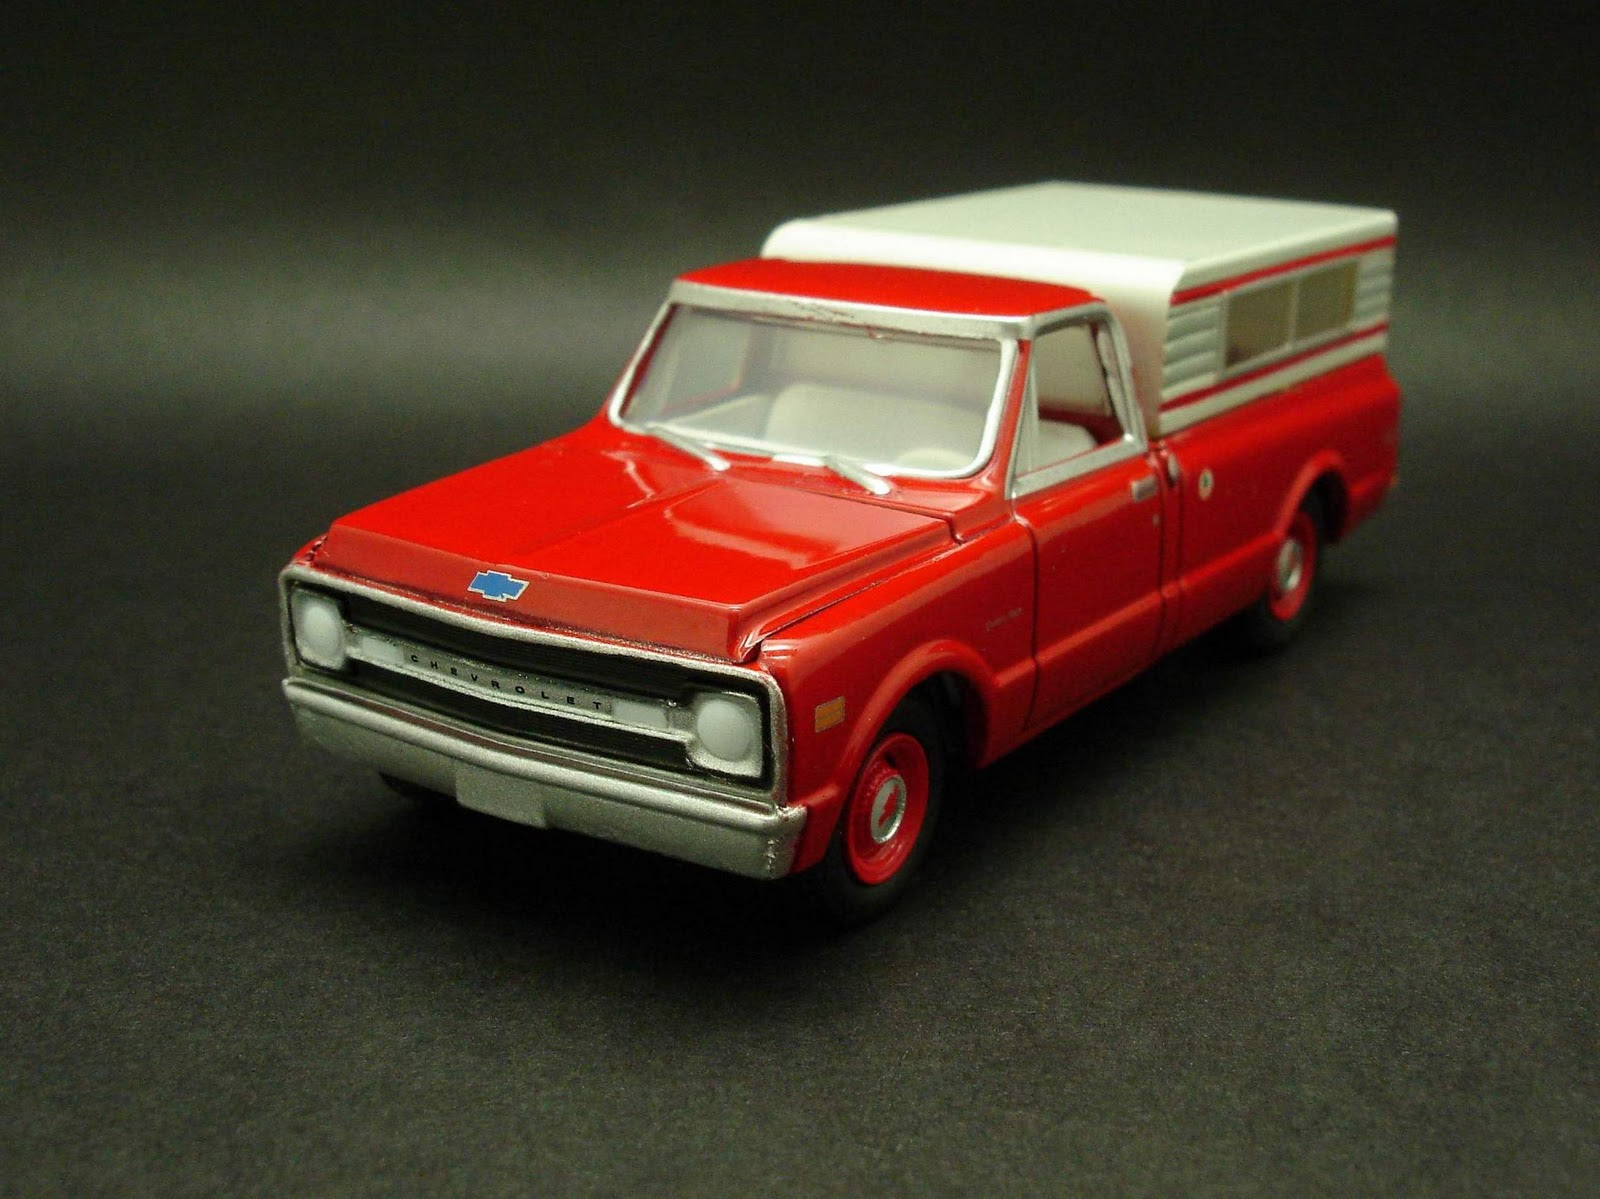 1:64 Scale Diecast from